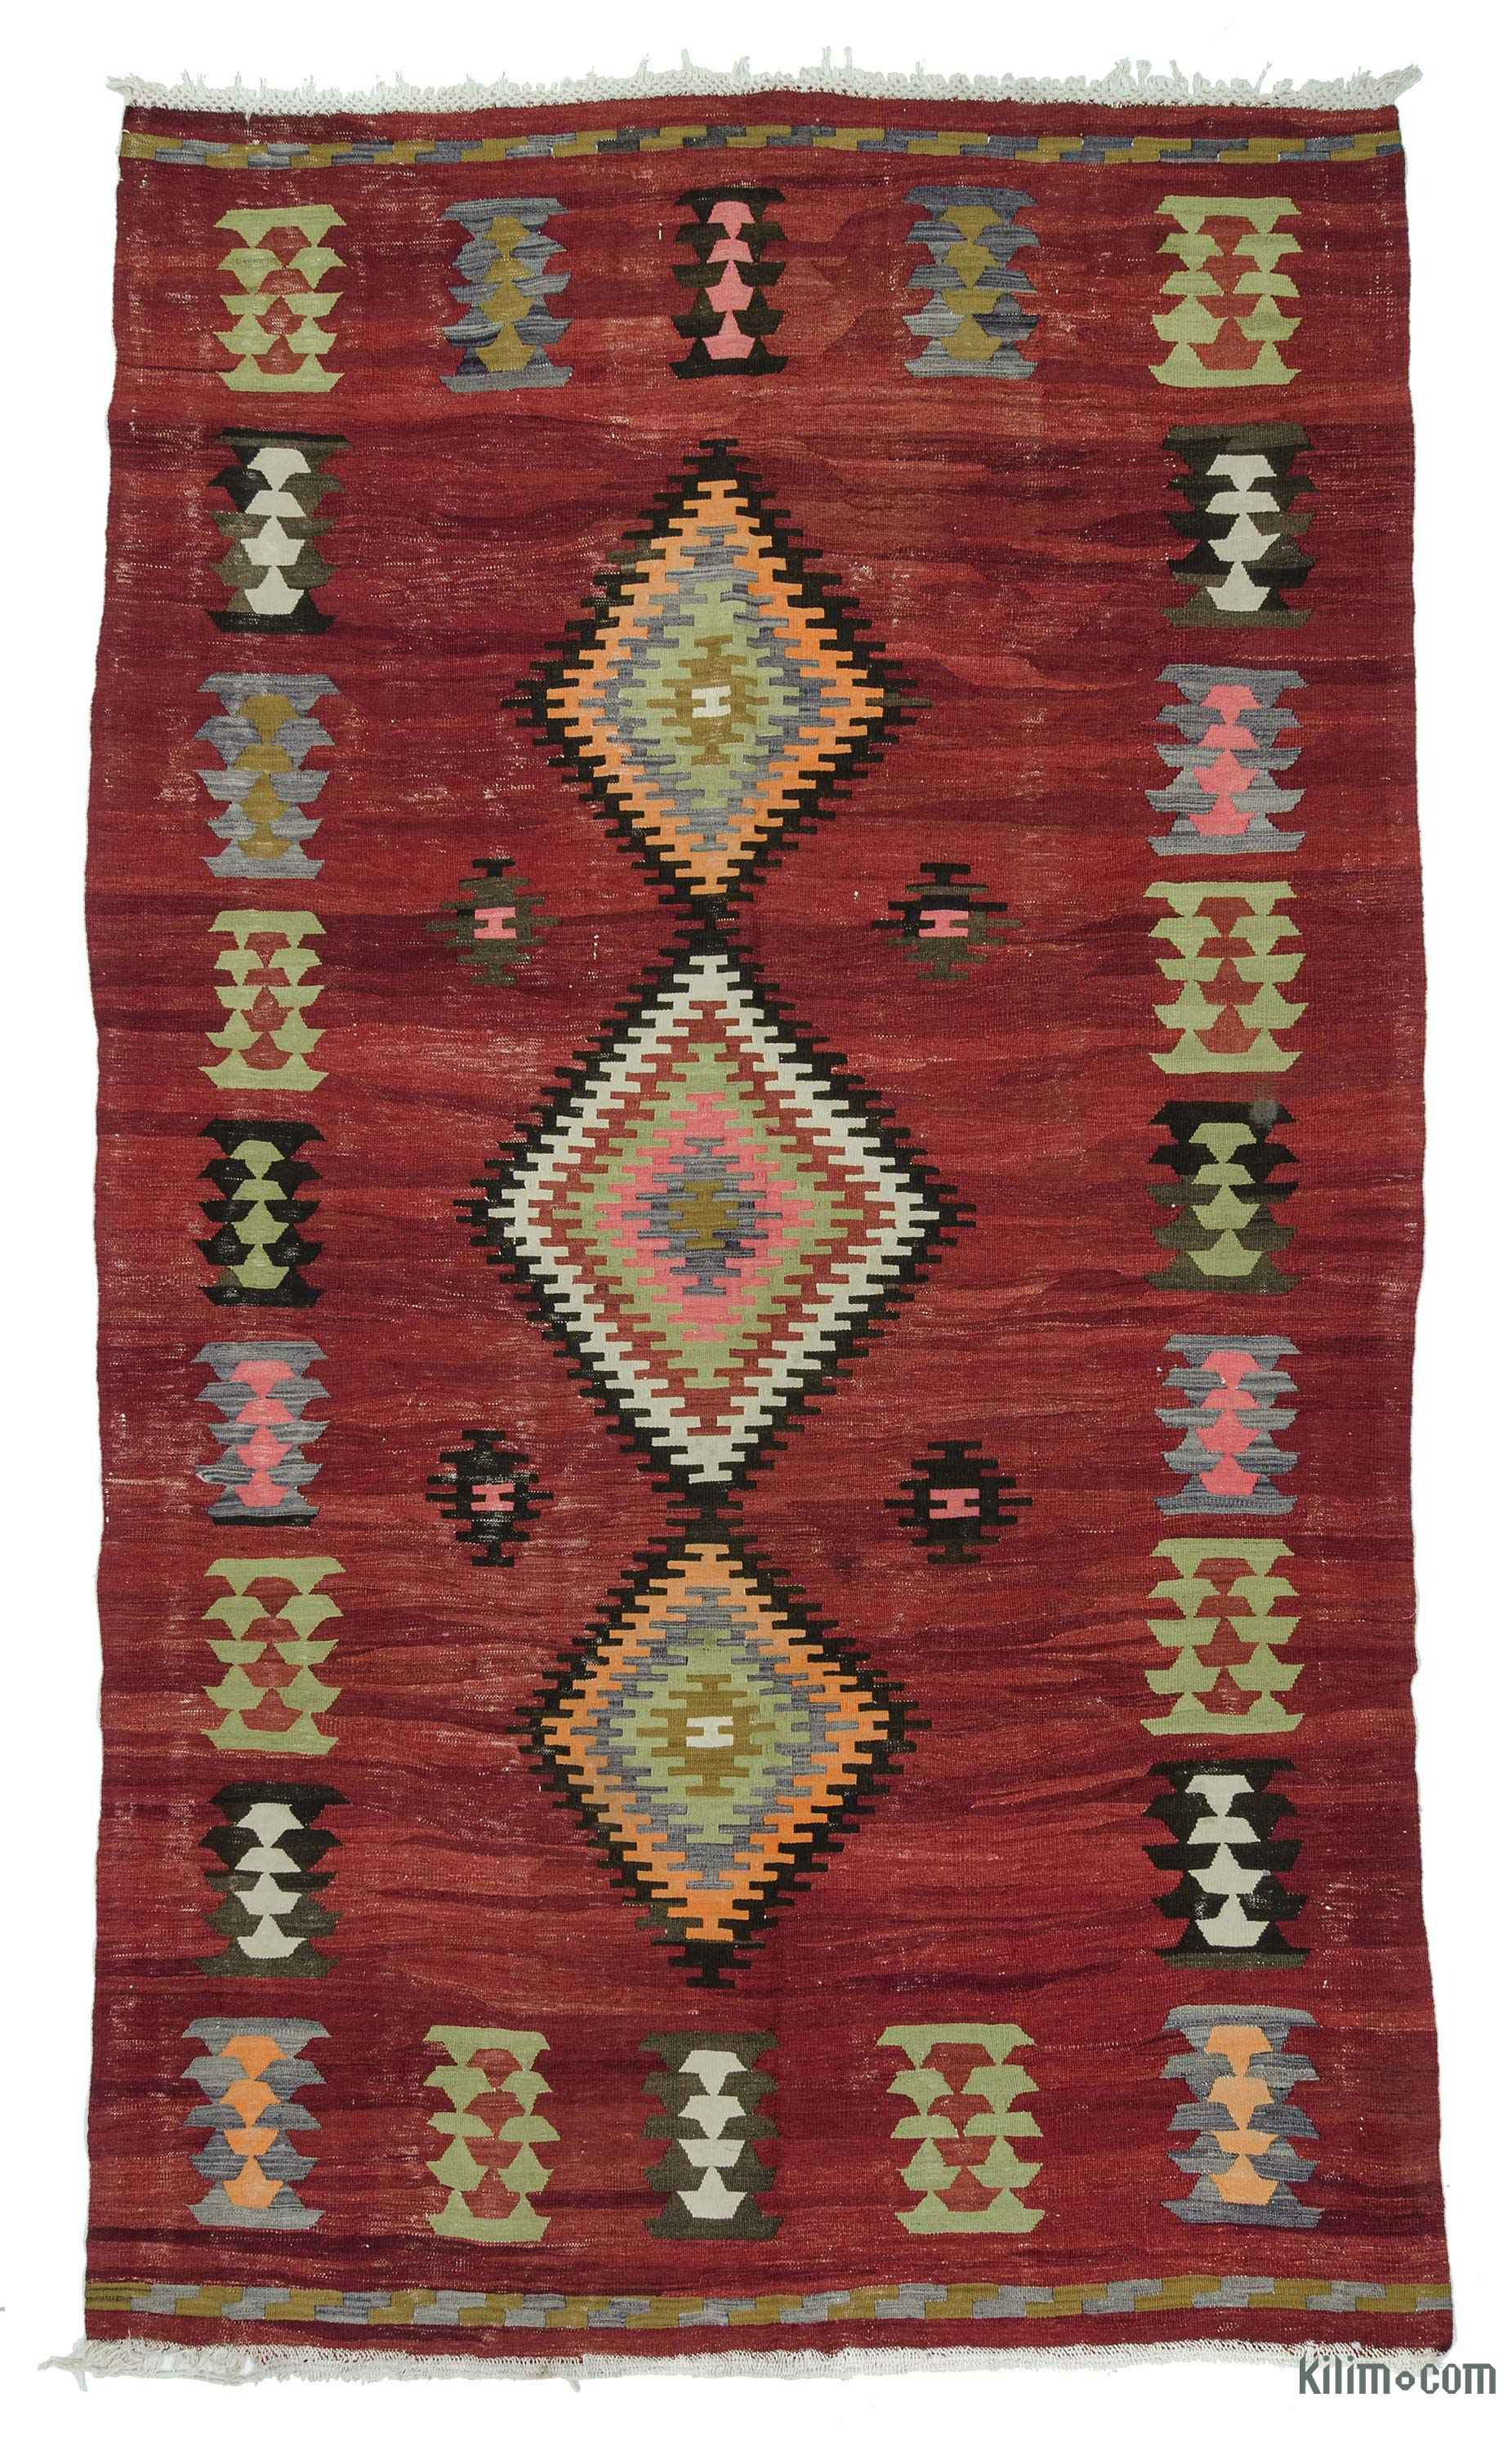 Rugs And Kilims Are The Master Elements Of Bohemian Style: Vintage Kilim Rugs